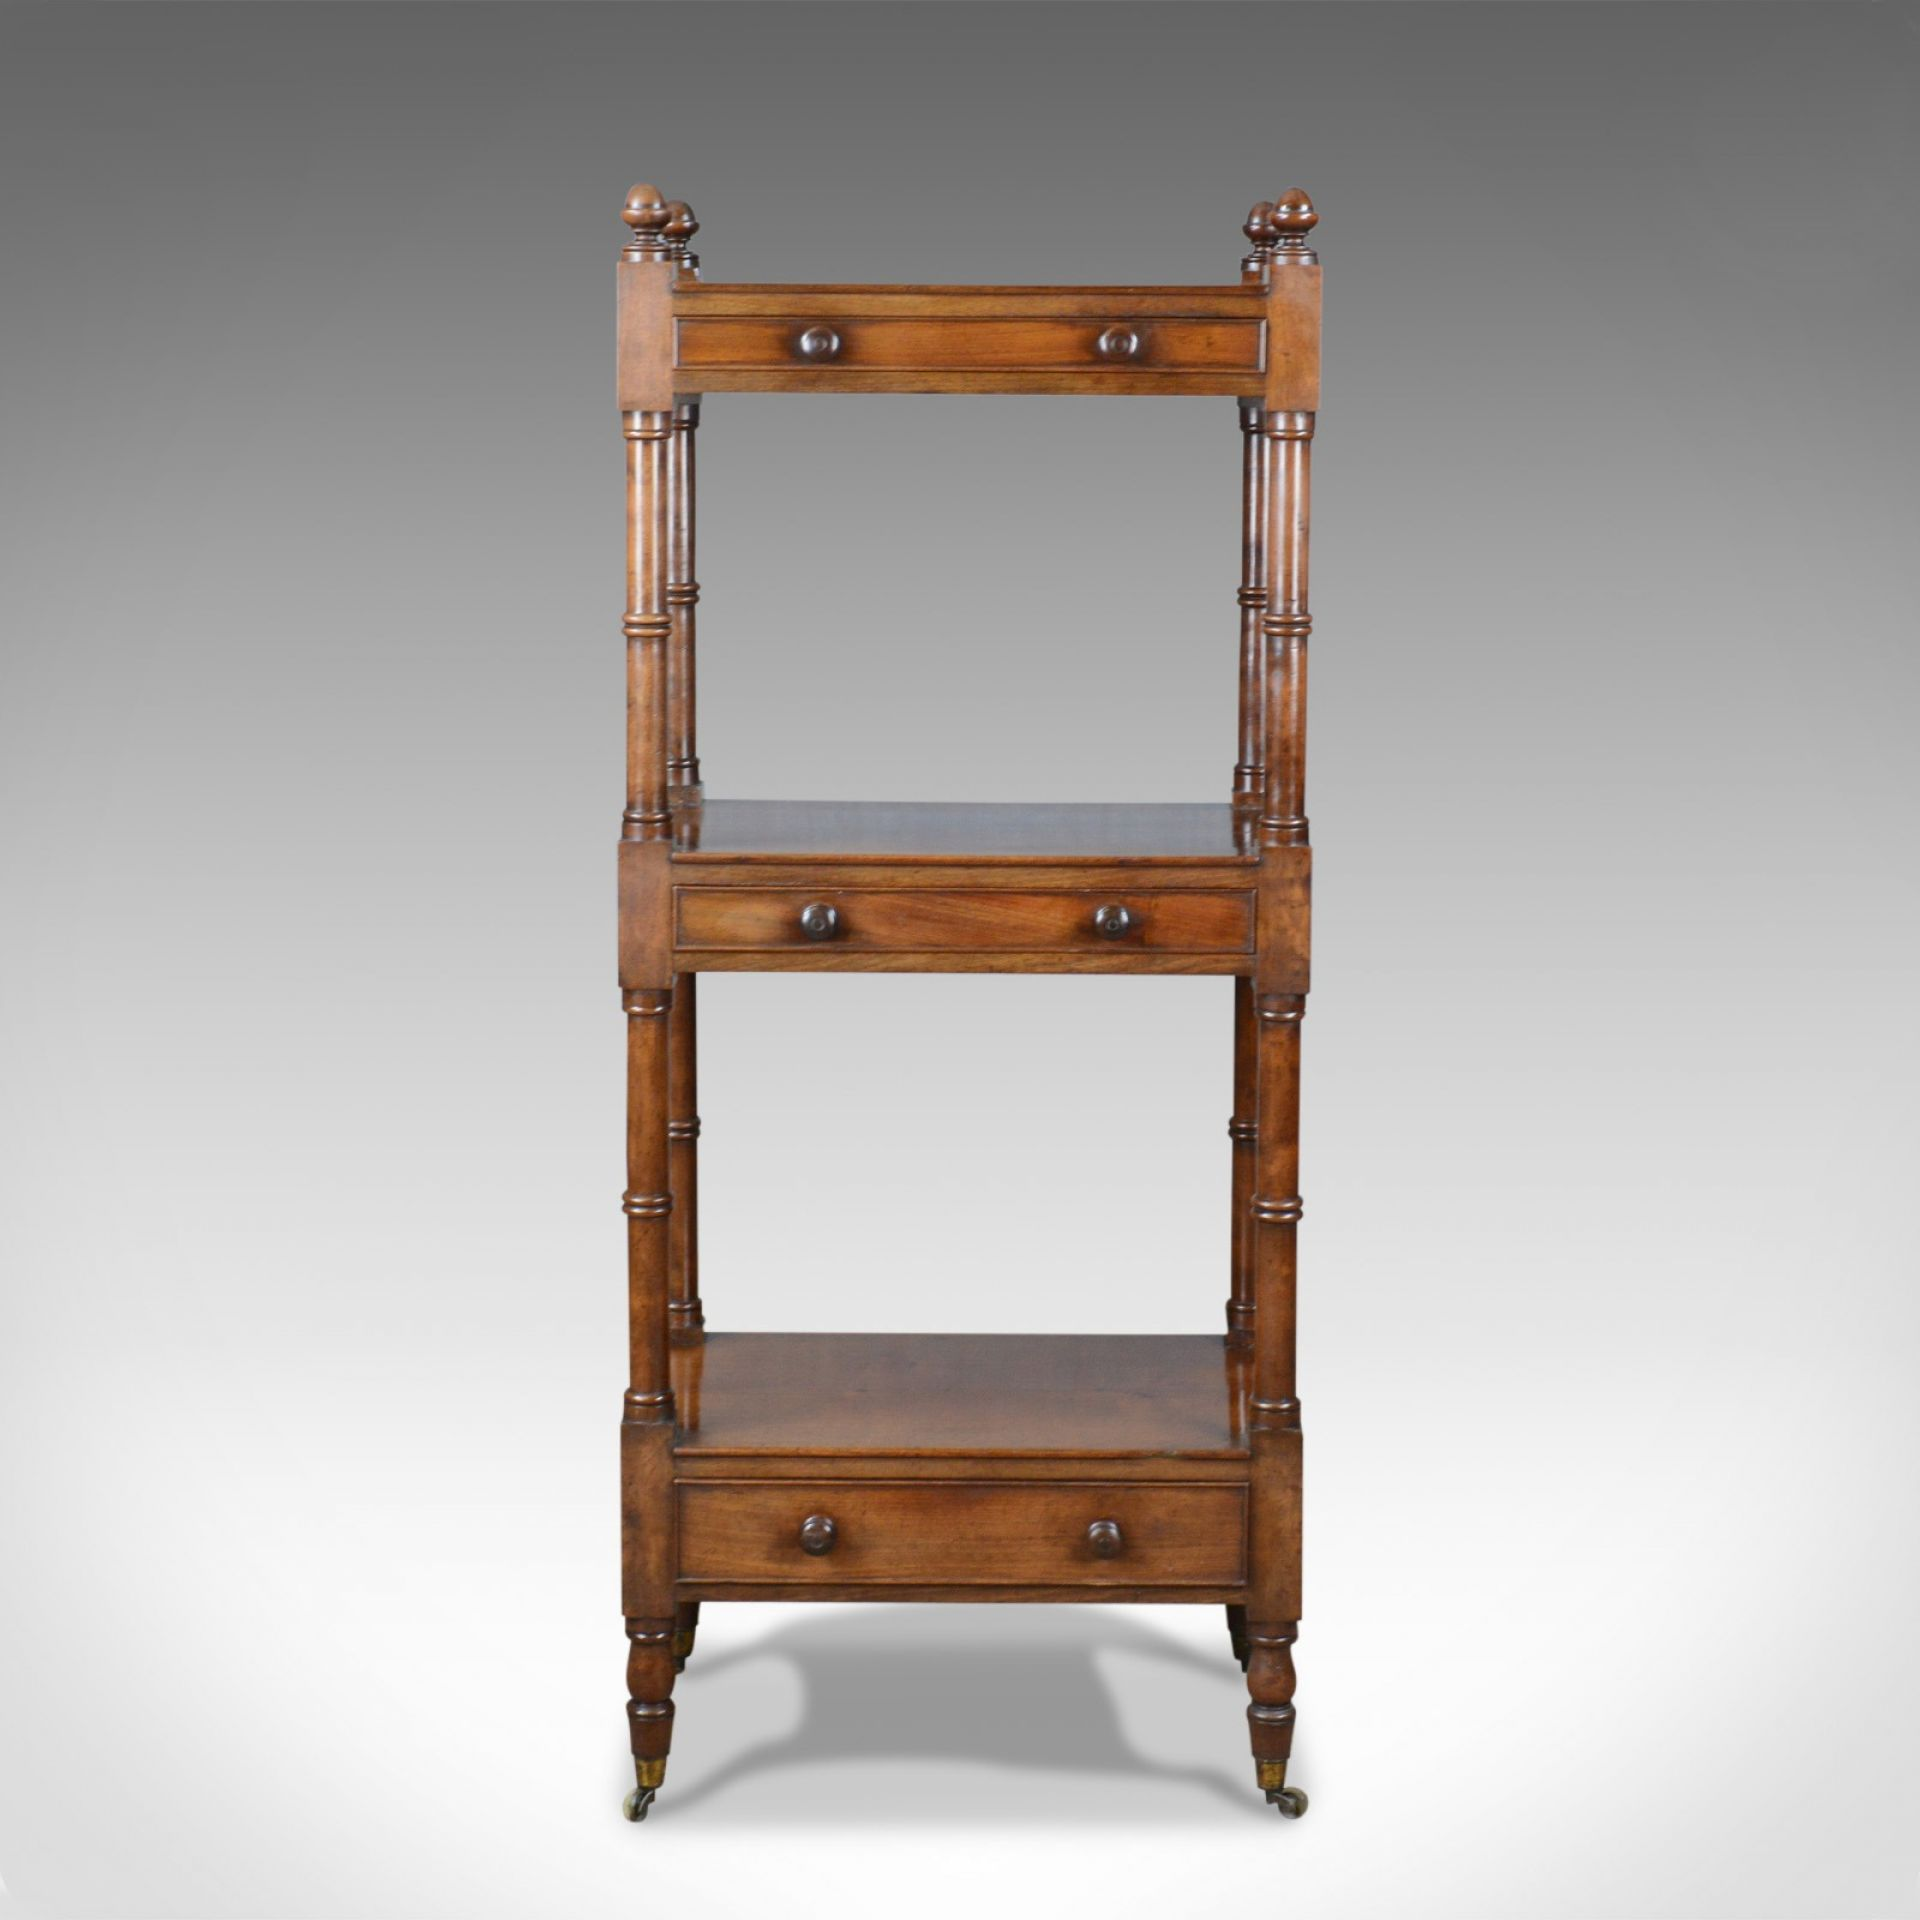 Antique Whatnot, English, Mahogany, Three Tier, Victorian, Display Stand, c.1860